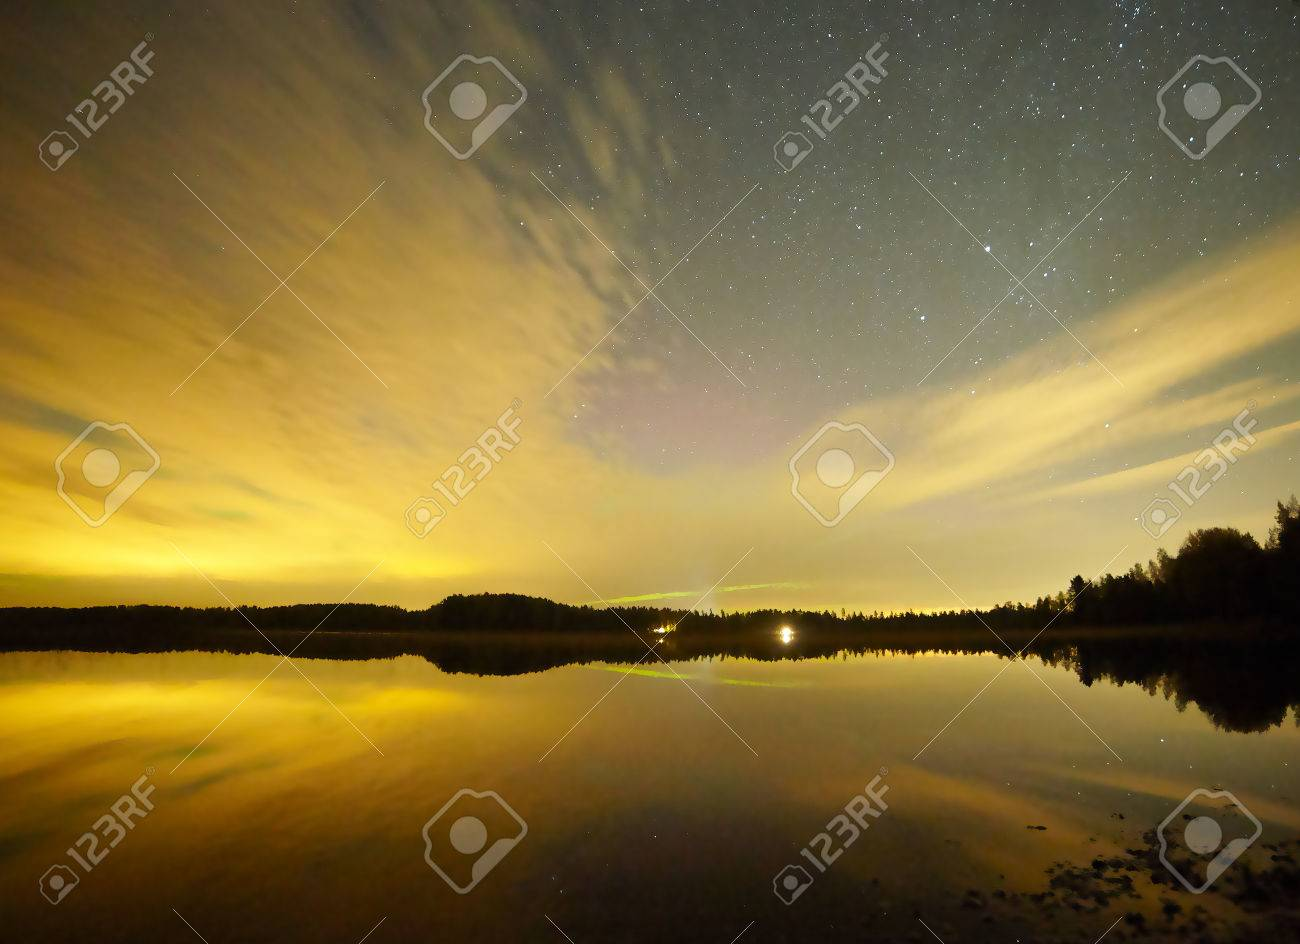 Stars and sunset in Finland. Reflection of the forest skyline in the calm water of a lake. Stock Photo - 77577466